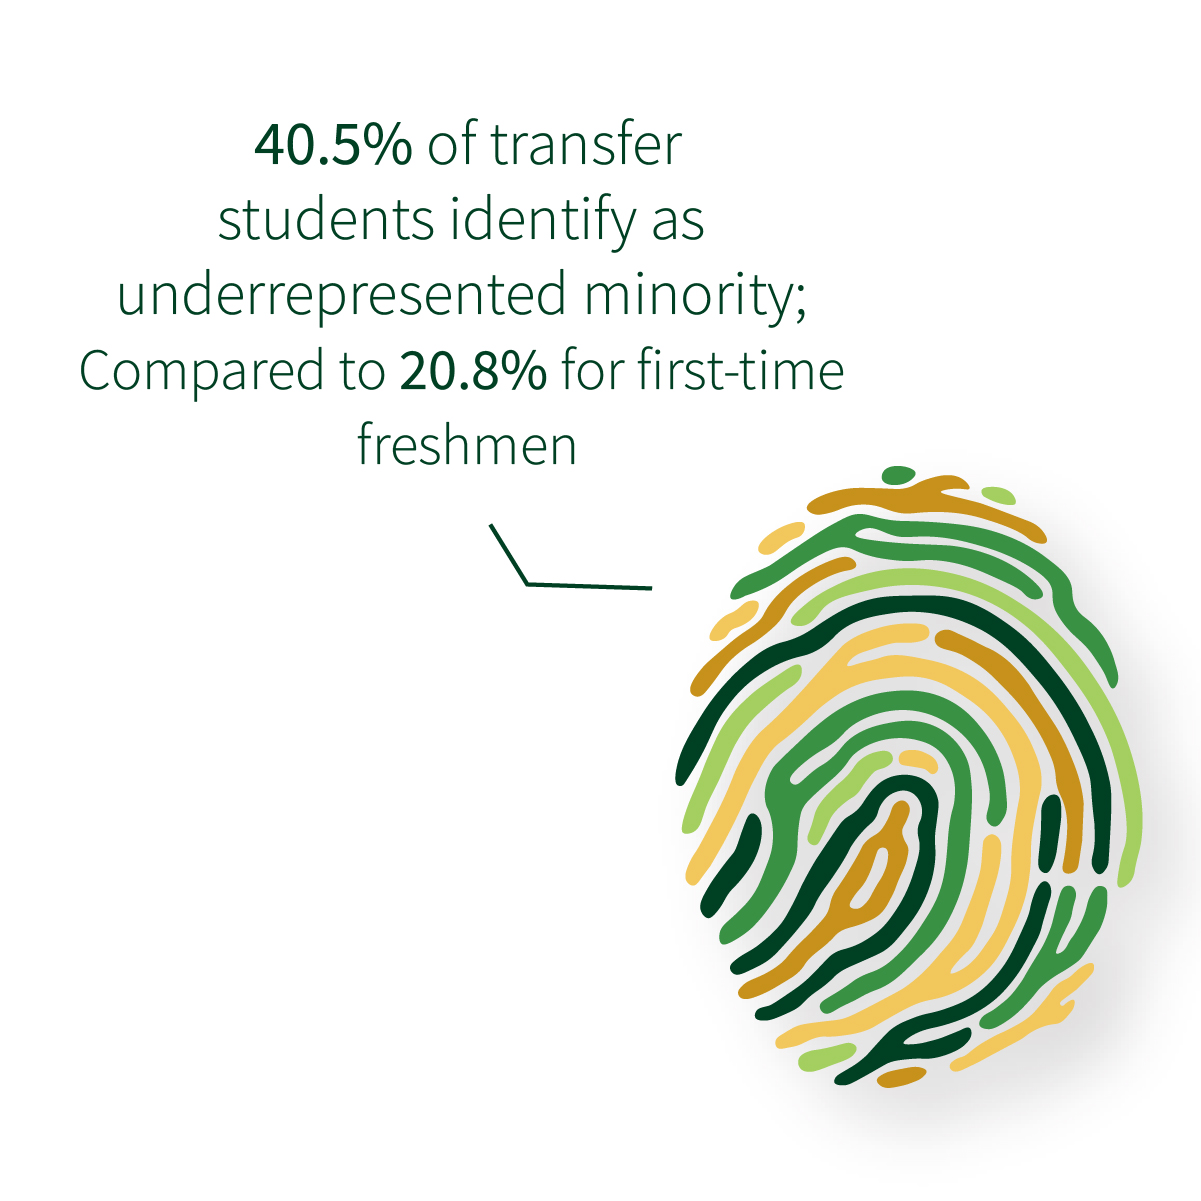 40.5% of transfer students identify as underrepresented minority; compared to 20.8% of first-time freshman